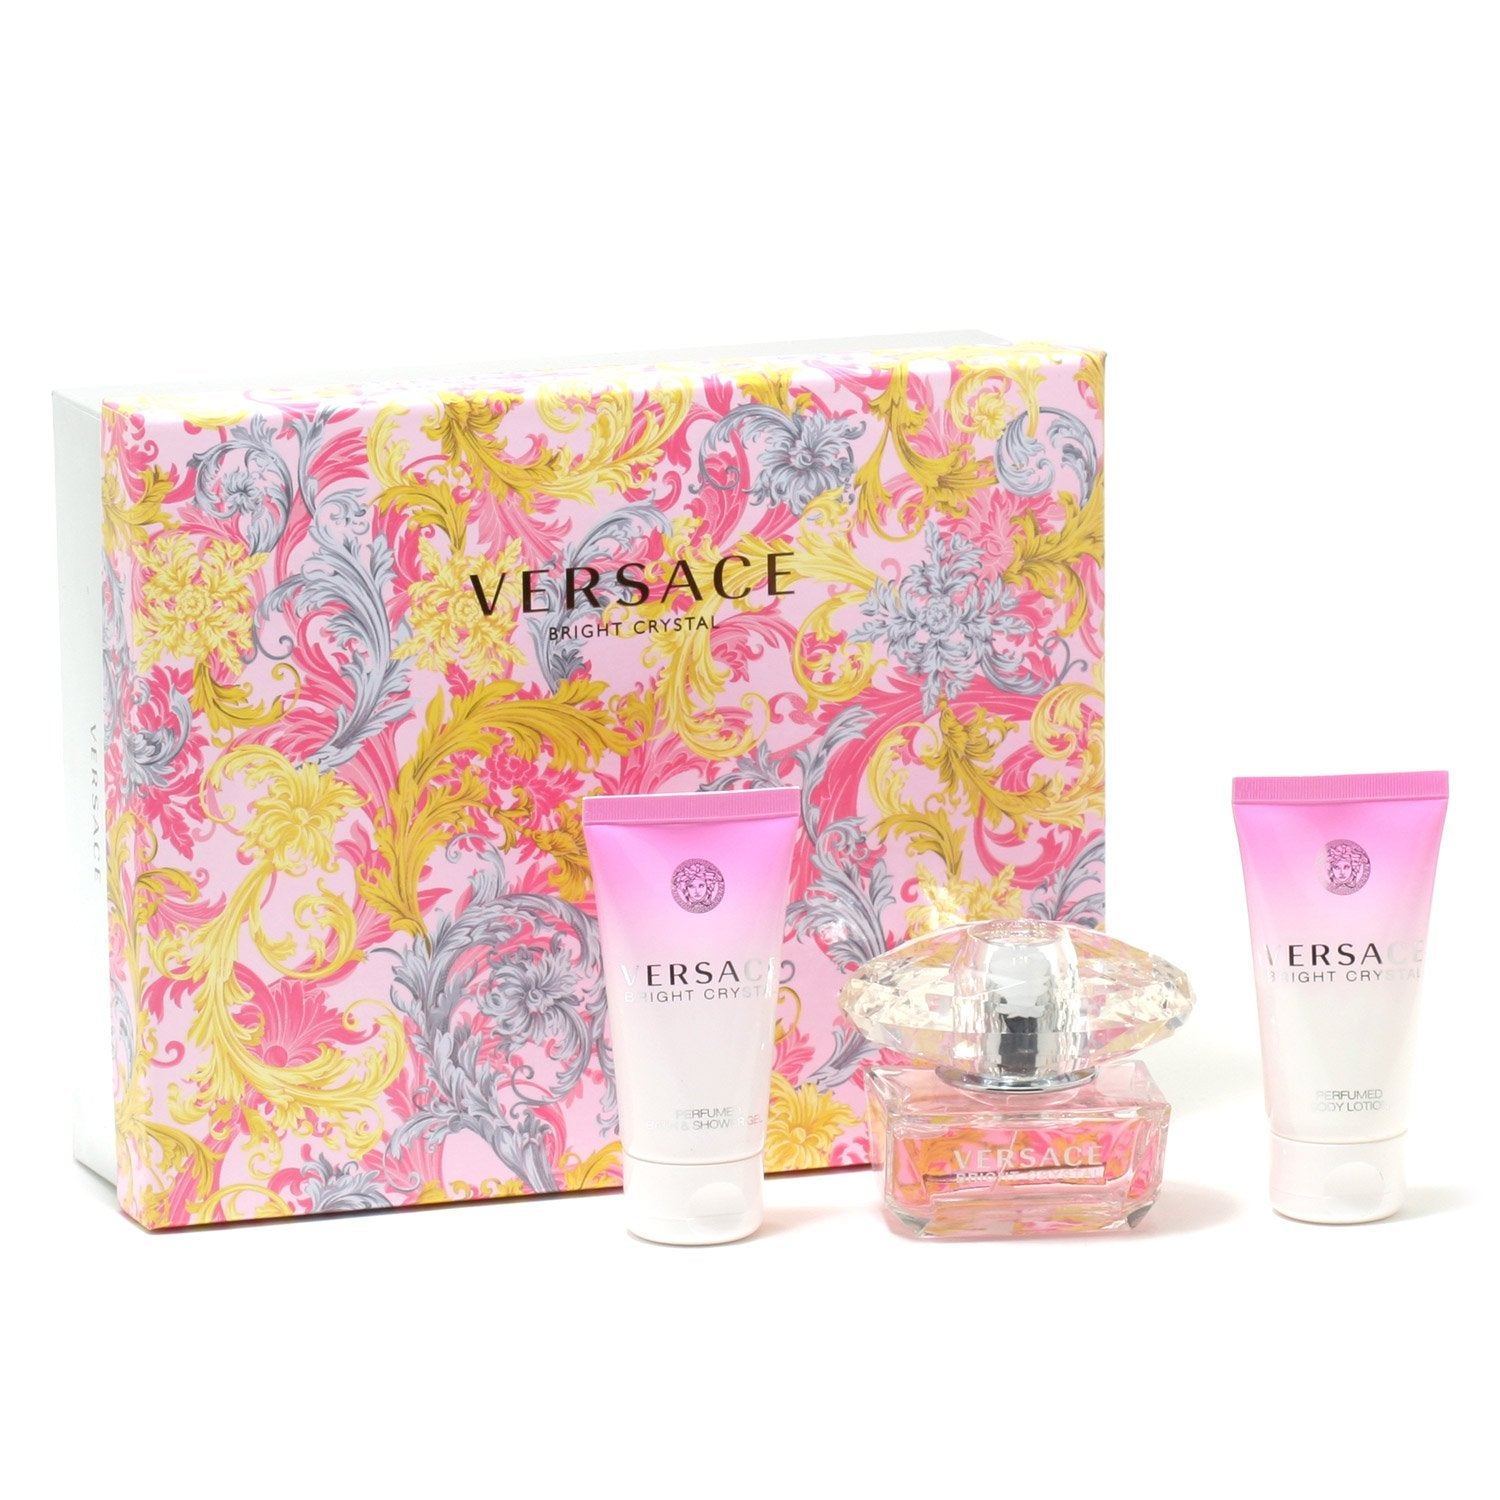 Perfume Sets - VERSACE BRIGHT CRYSTAL FOR WOMEN - GIFT SET